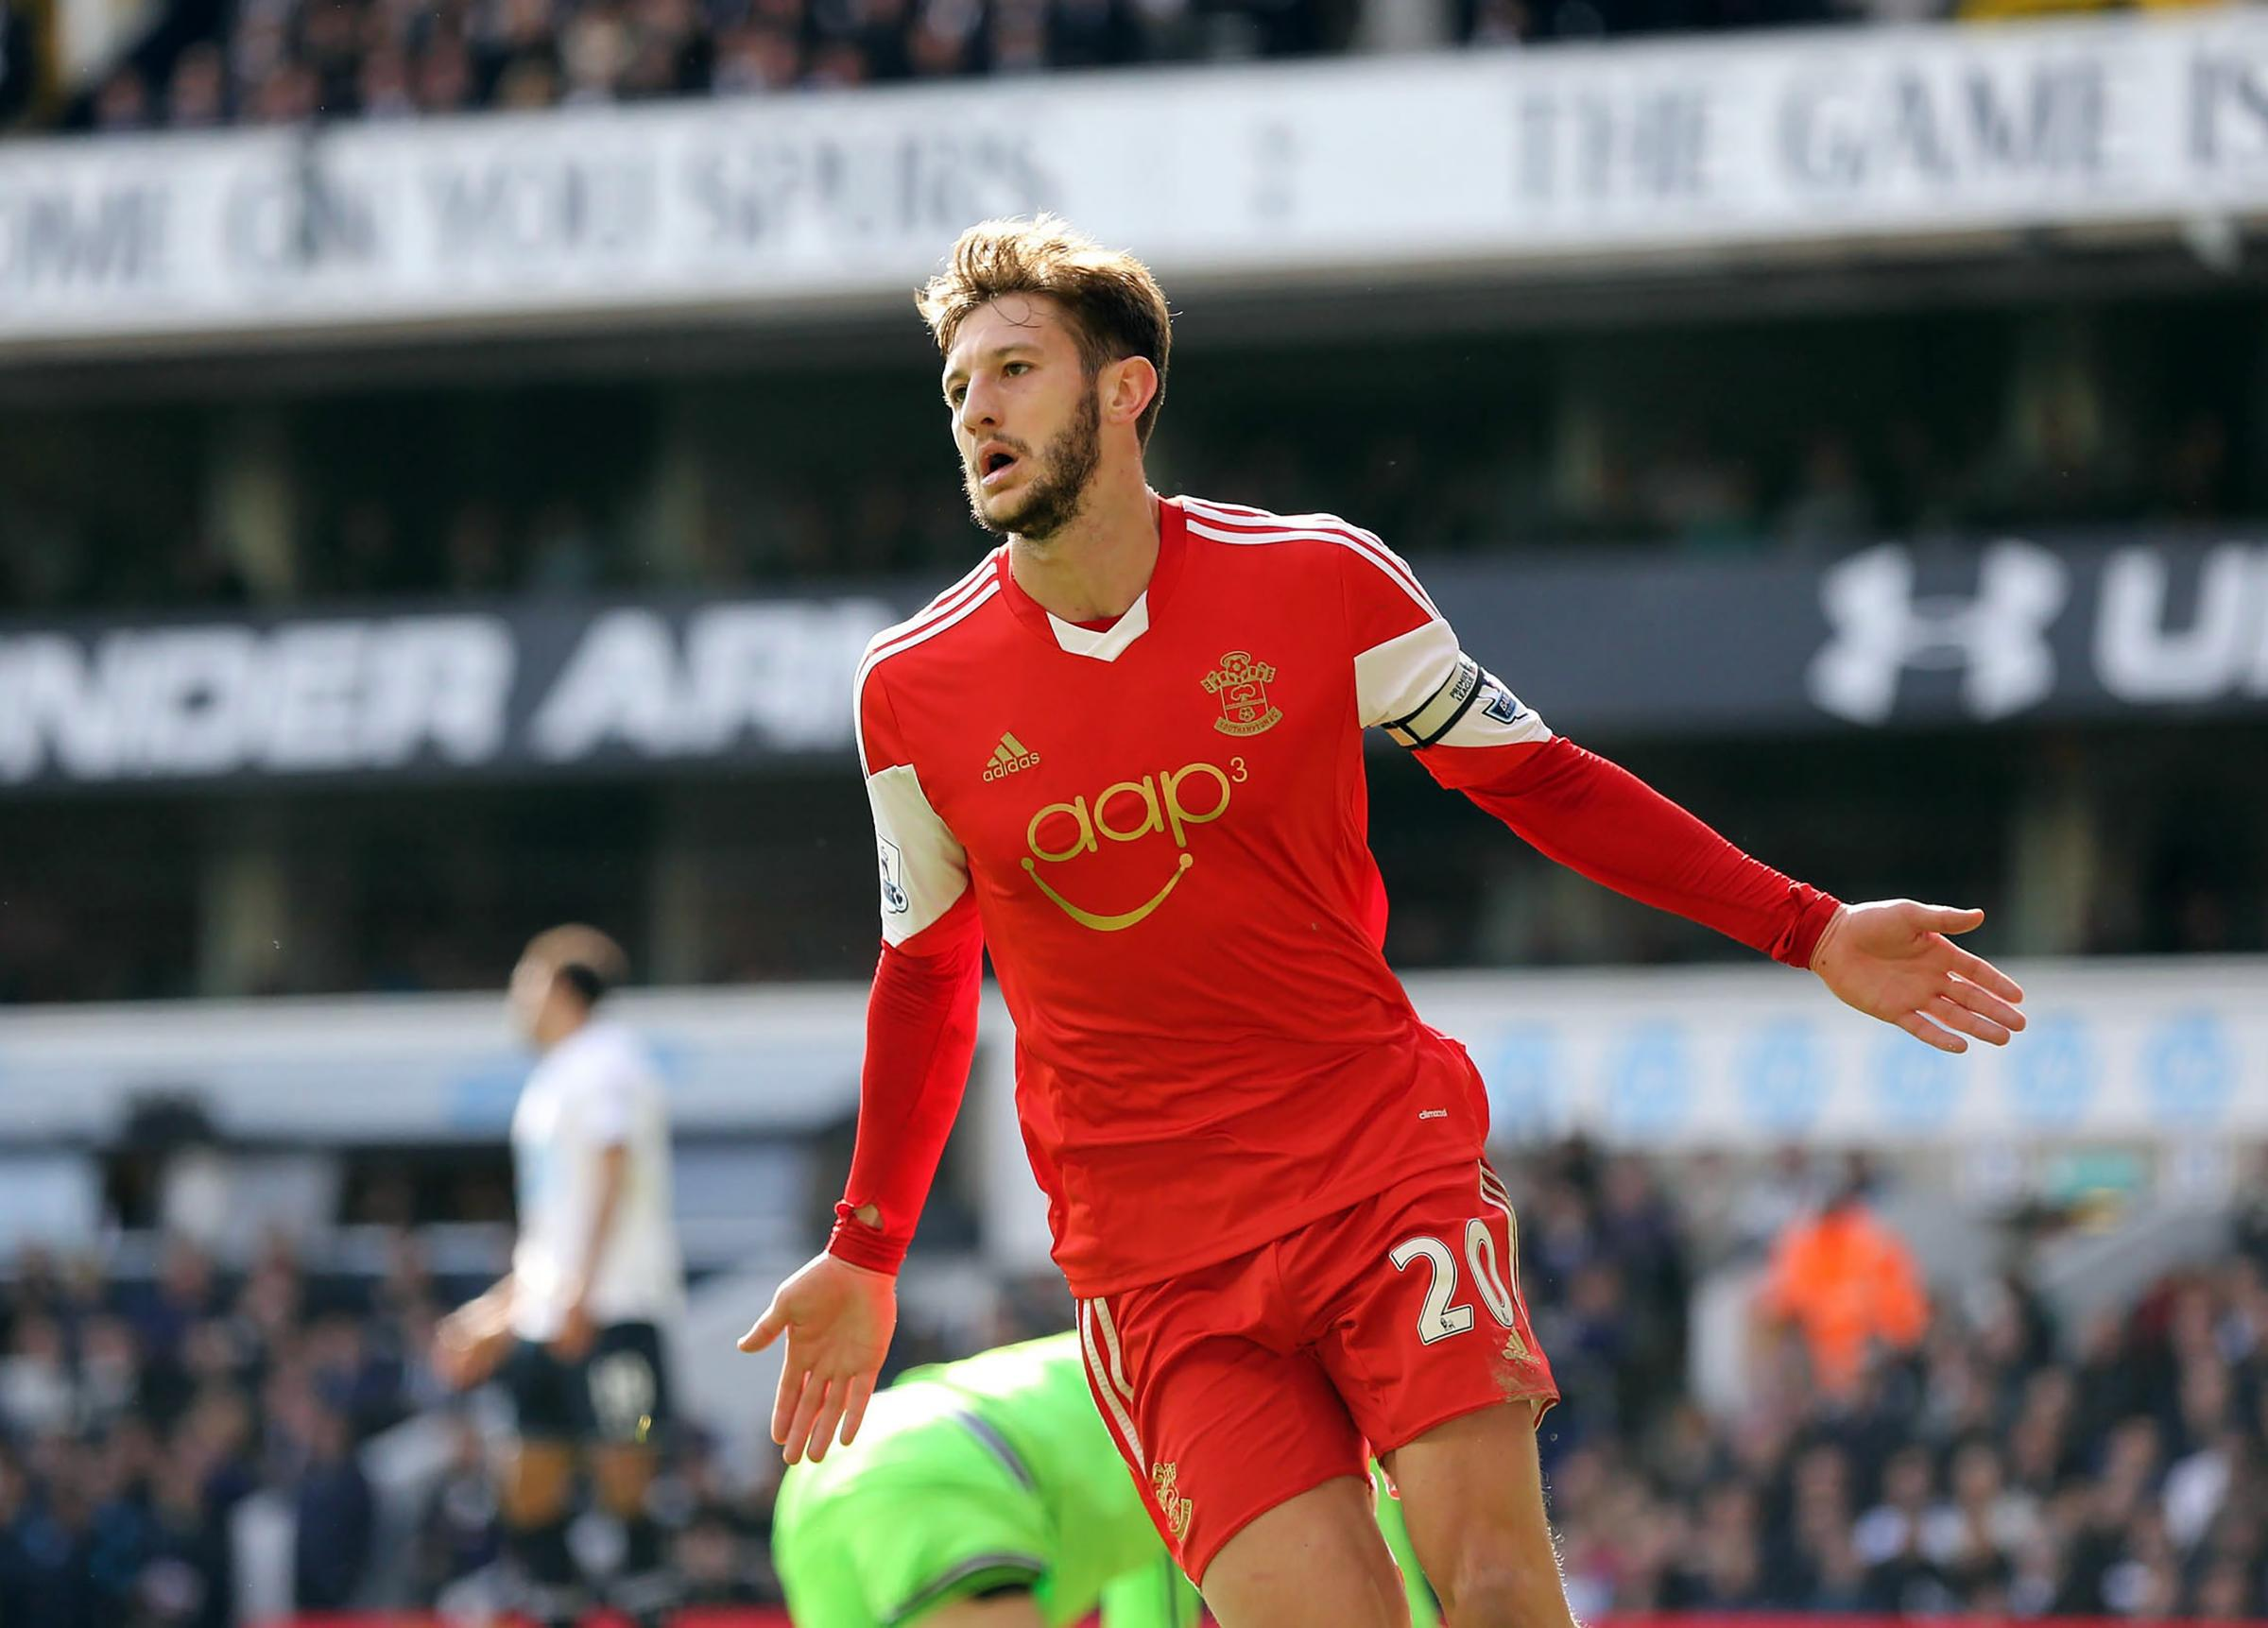 Lallana and Shaw keen to leave - but Saints standing firm